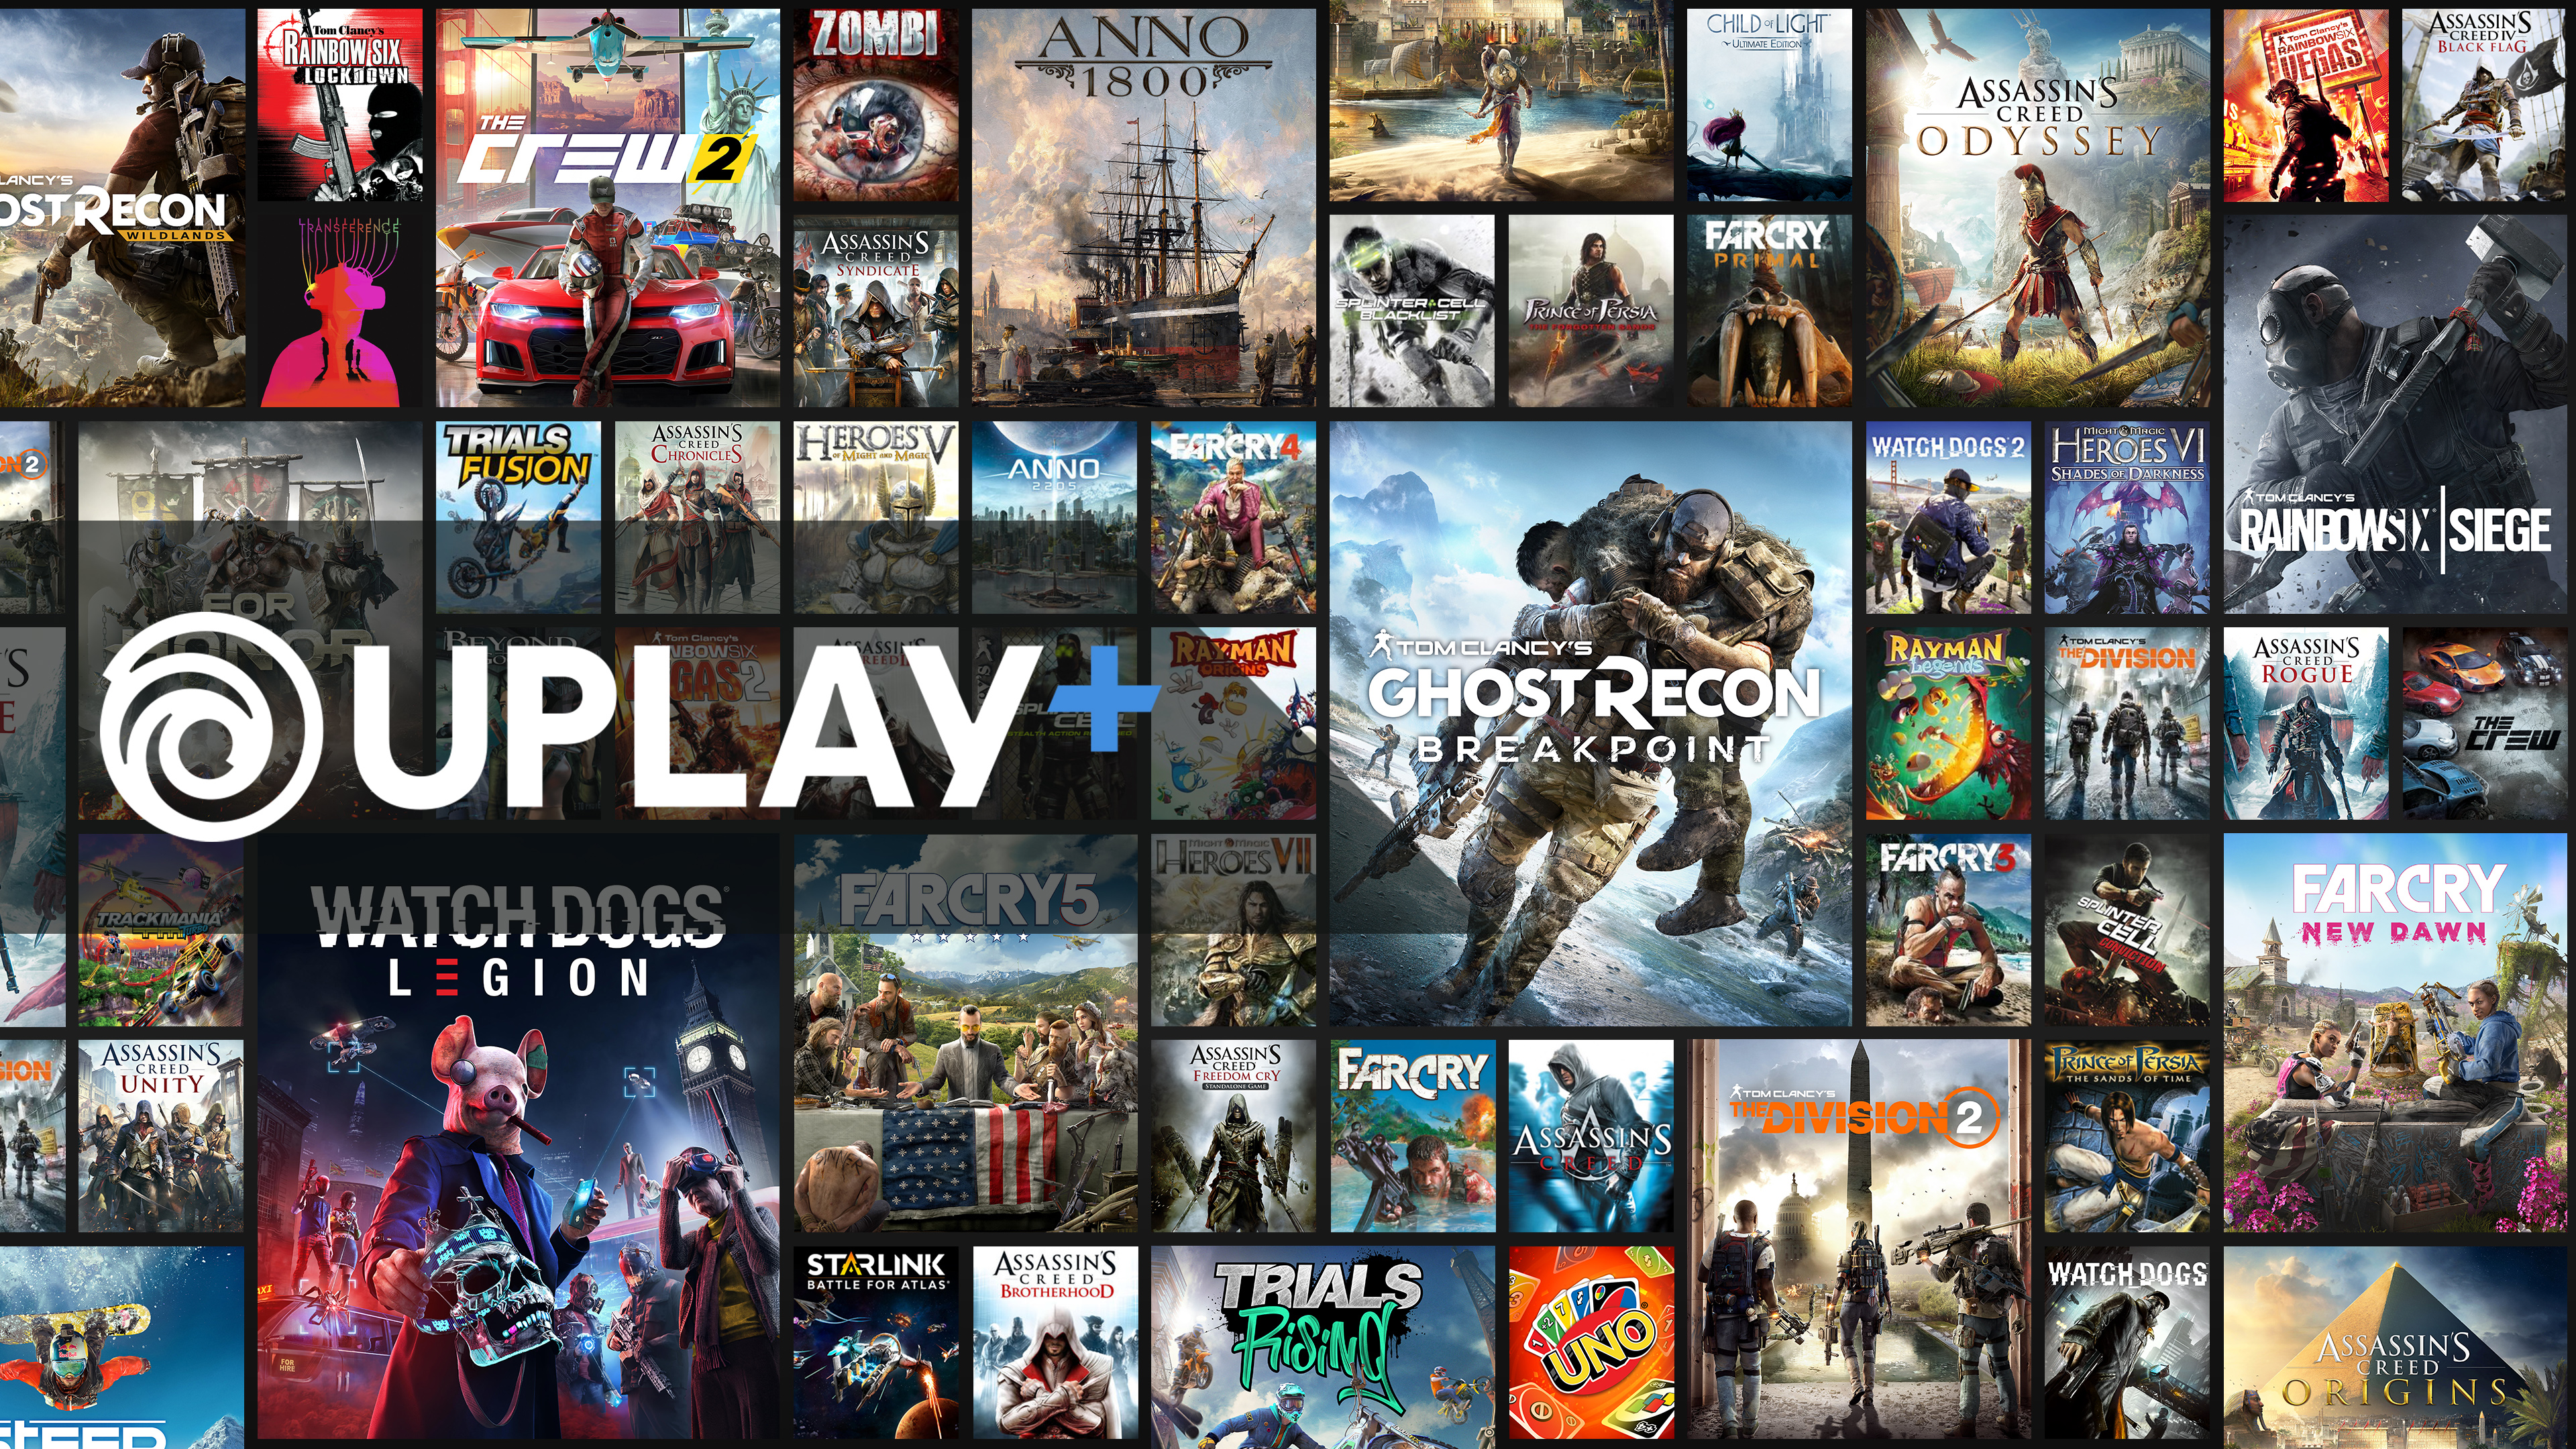 Ubisoft Fills E3 Hour With Tom Clancy Games And Watch Dogs Legion Gameplay Gamesindustry Biz